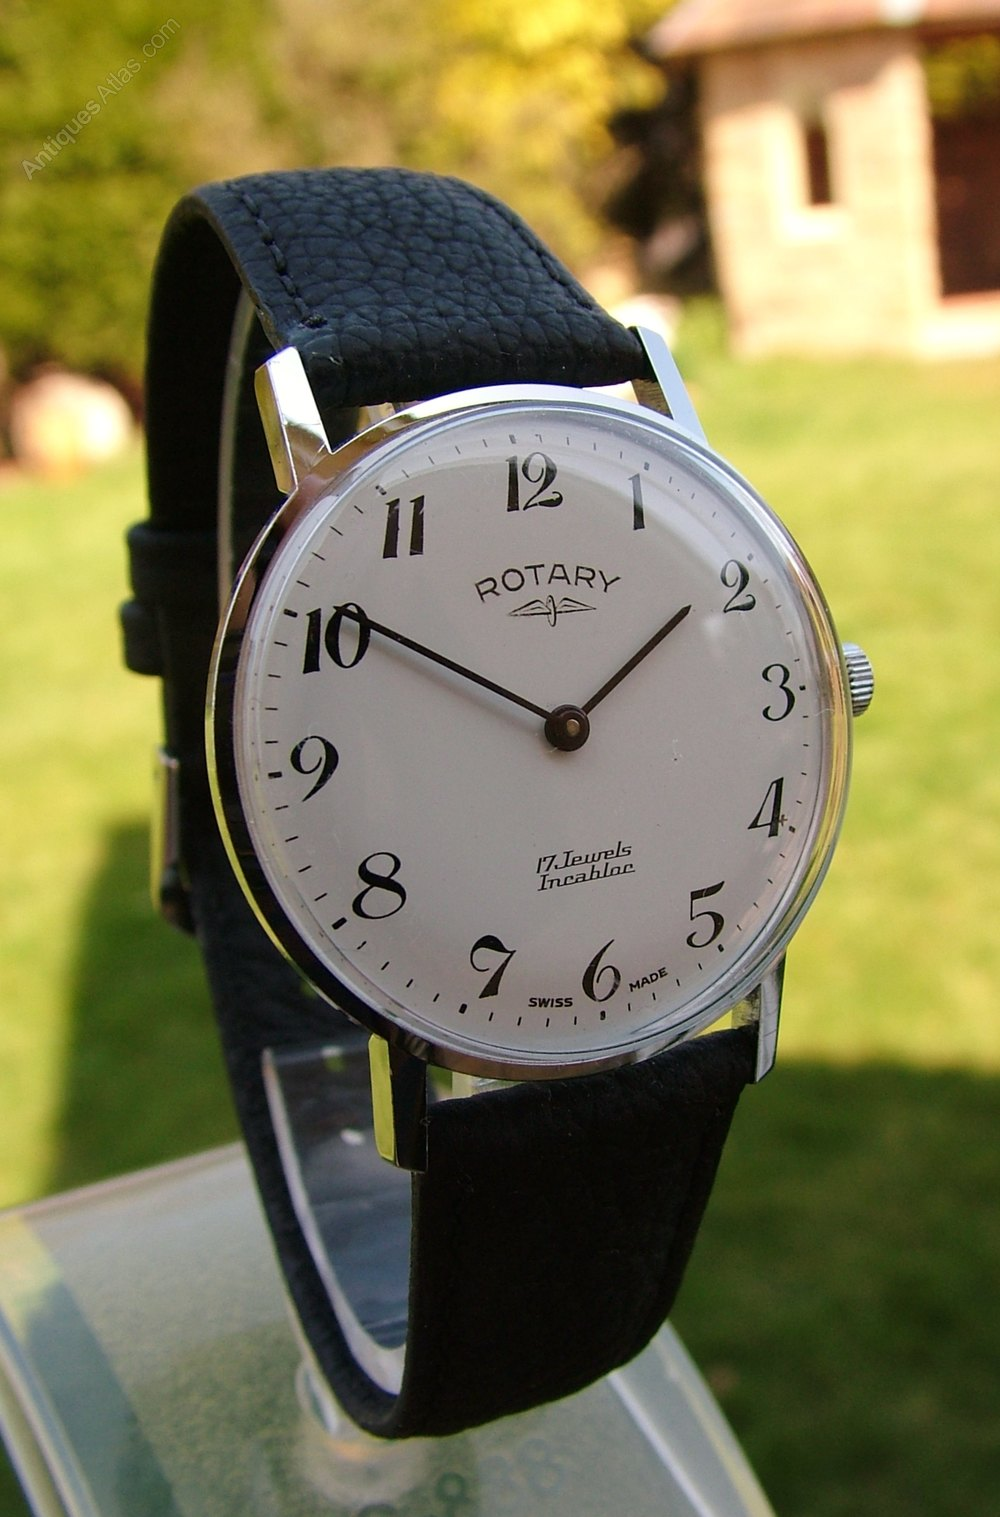 Rotary Vintage Rotary Watches